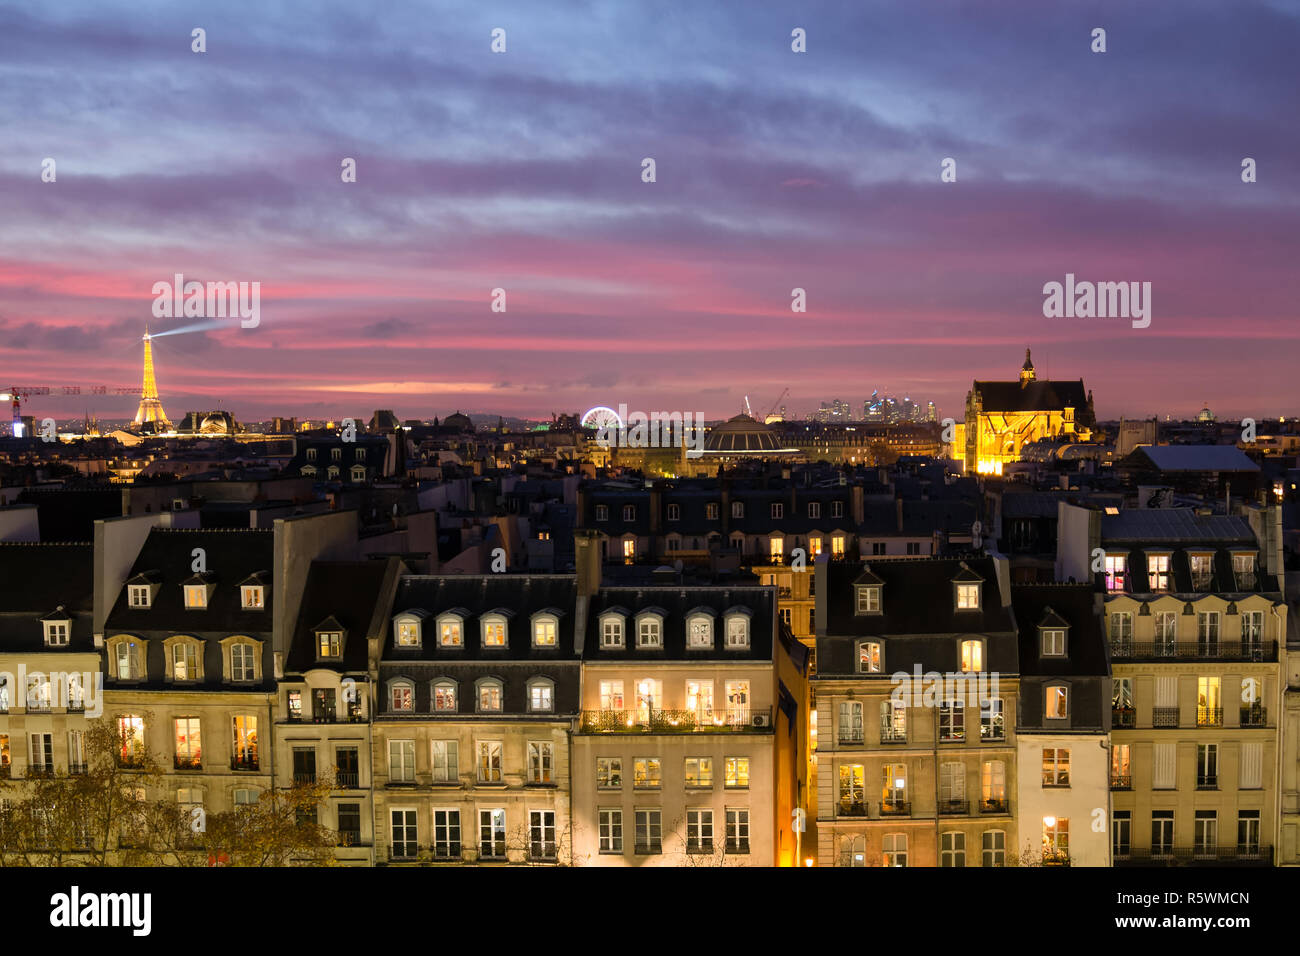 View Of Paris With Classic Architecture In Evening With Glowing Windows And Eiffel Tower Lit At Night During Pink And Purple Sunset Stock Photo Alamy